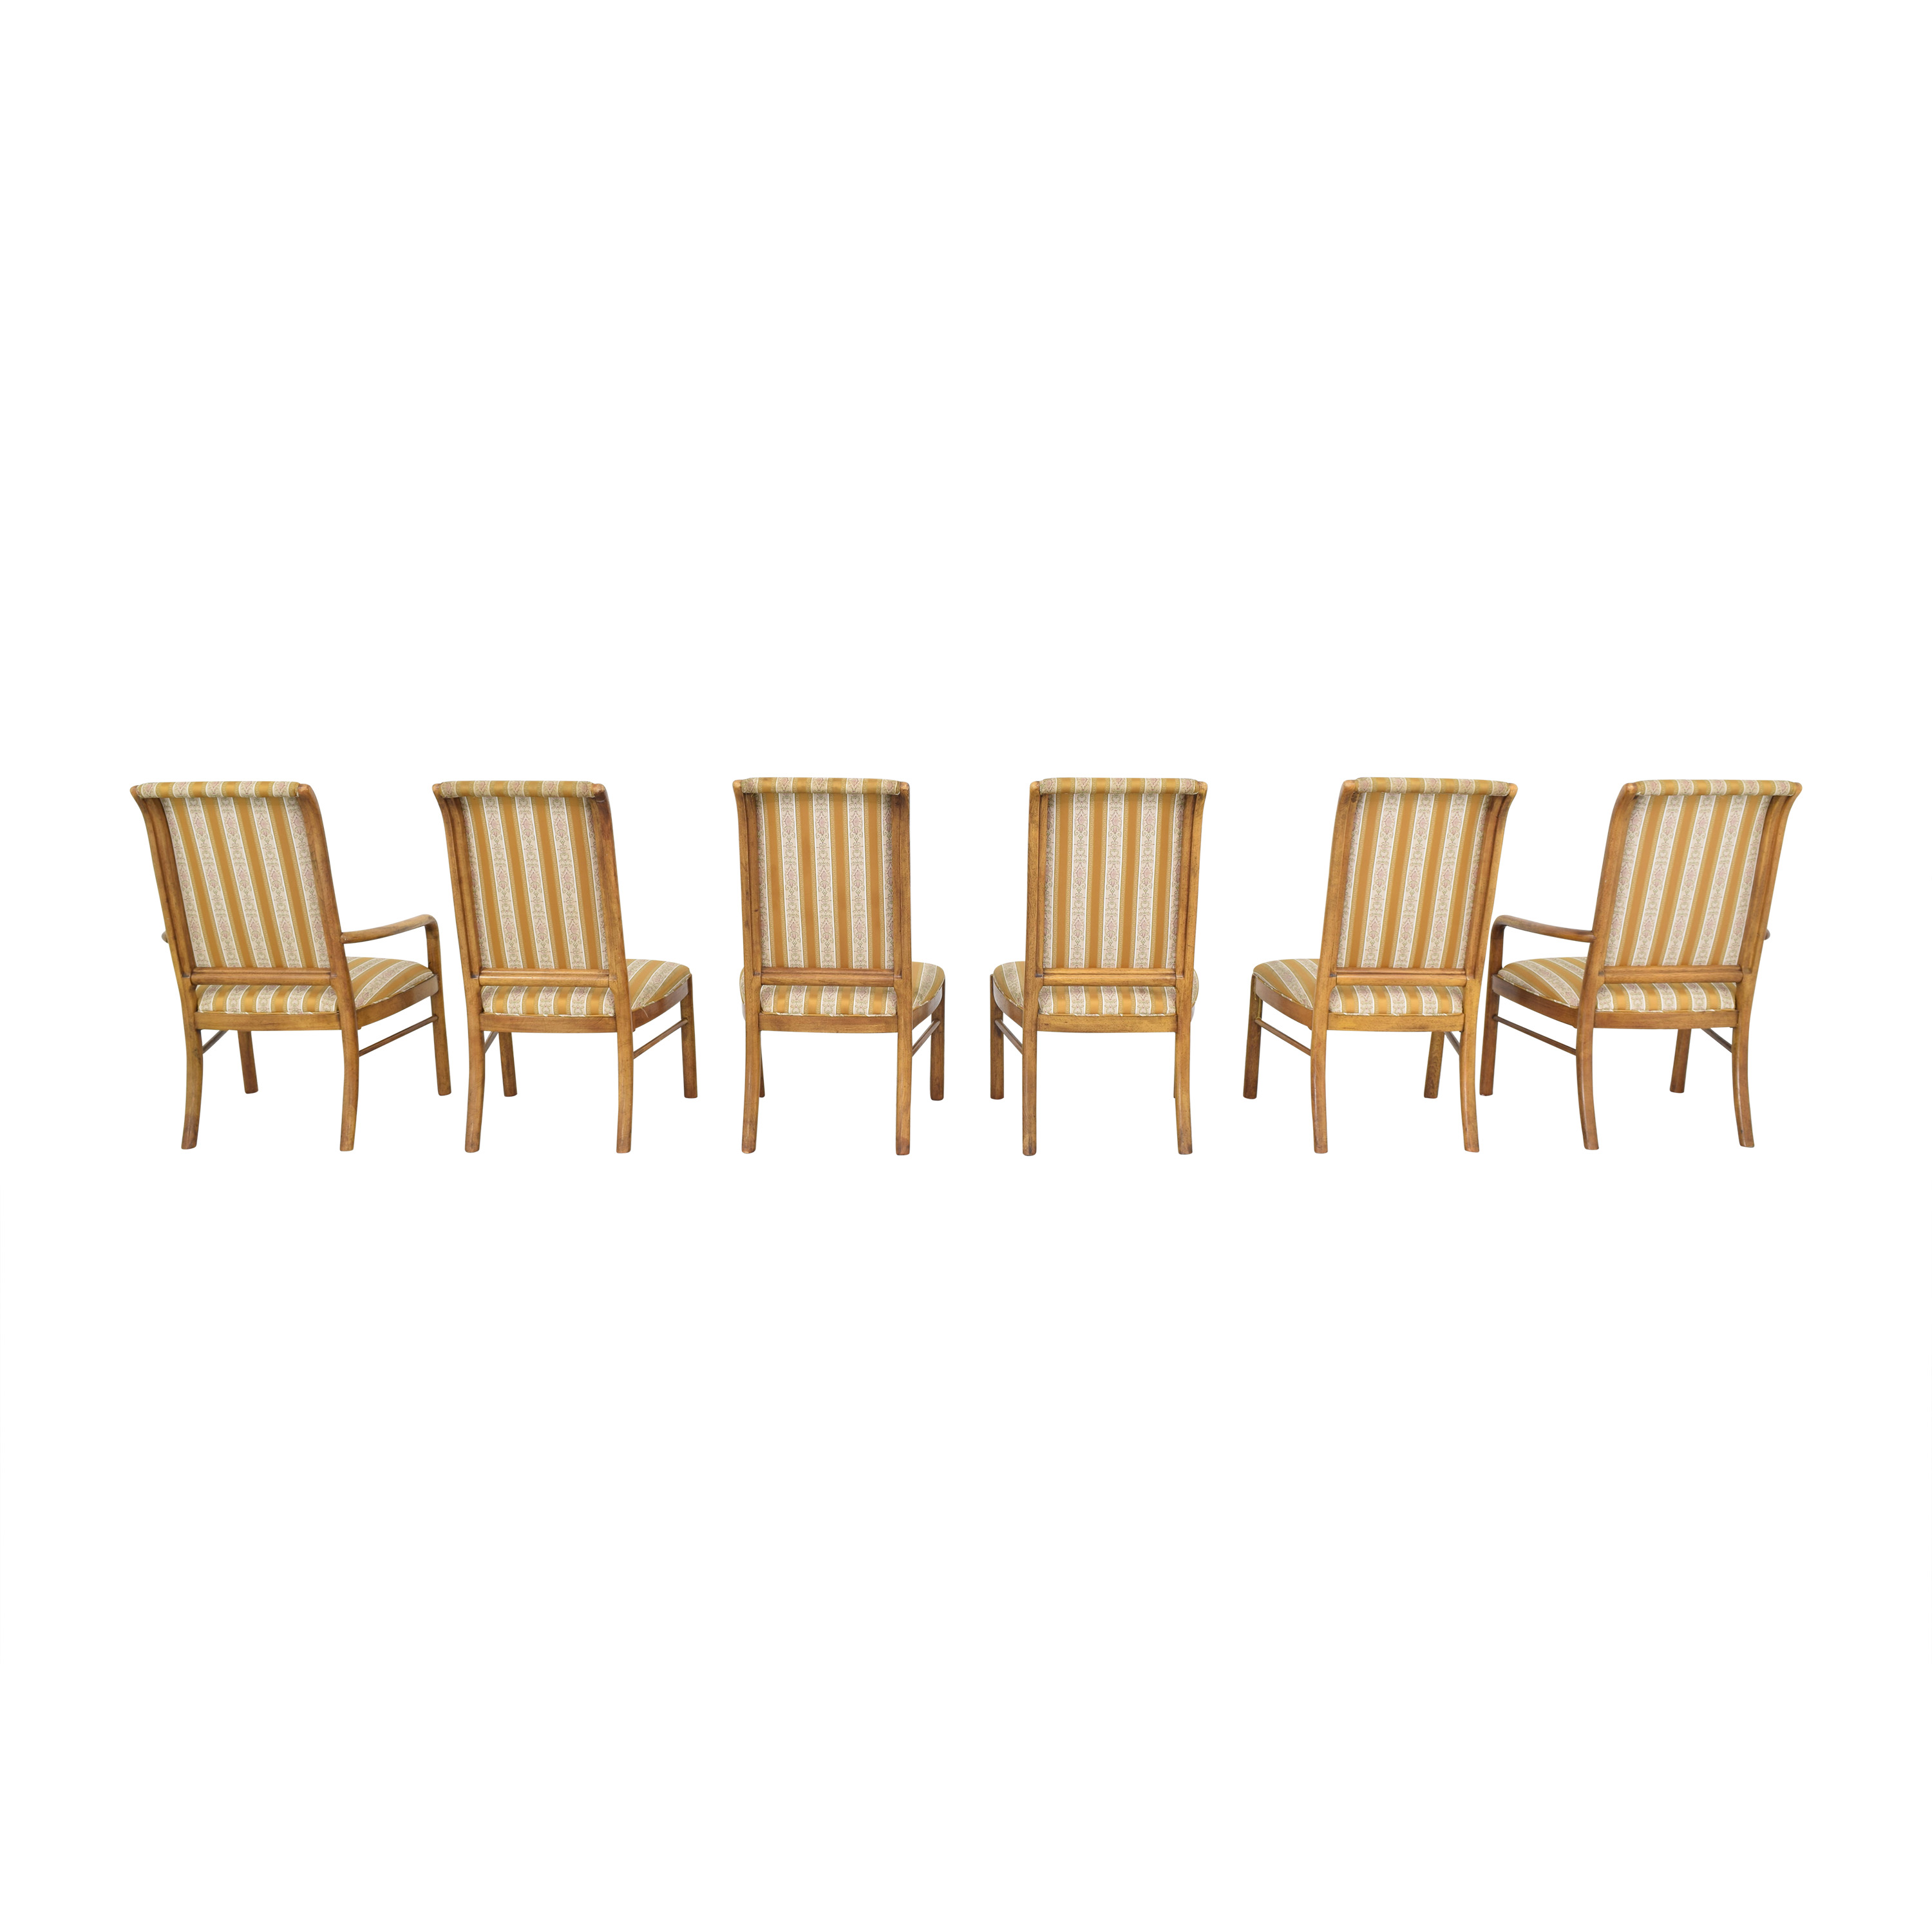 buy Drexel Heritage French Regency Style Dining Chairs Drexel Heritage